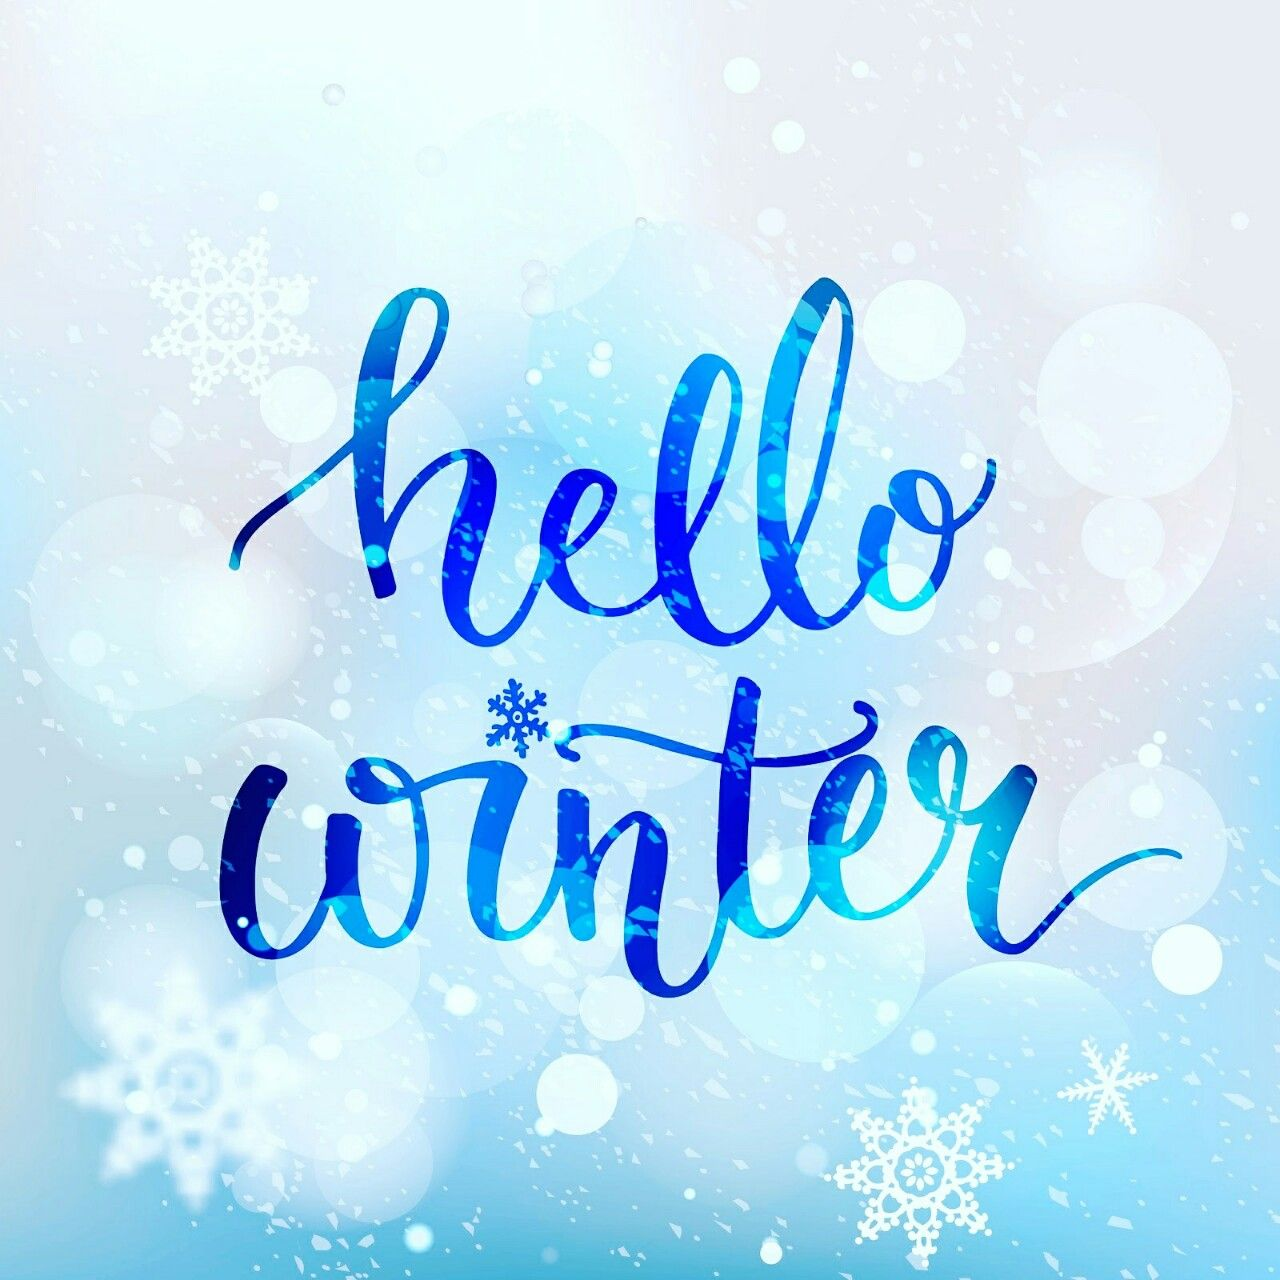 Happy First Day of Winter! Now where's the snow? Fun